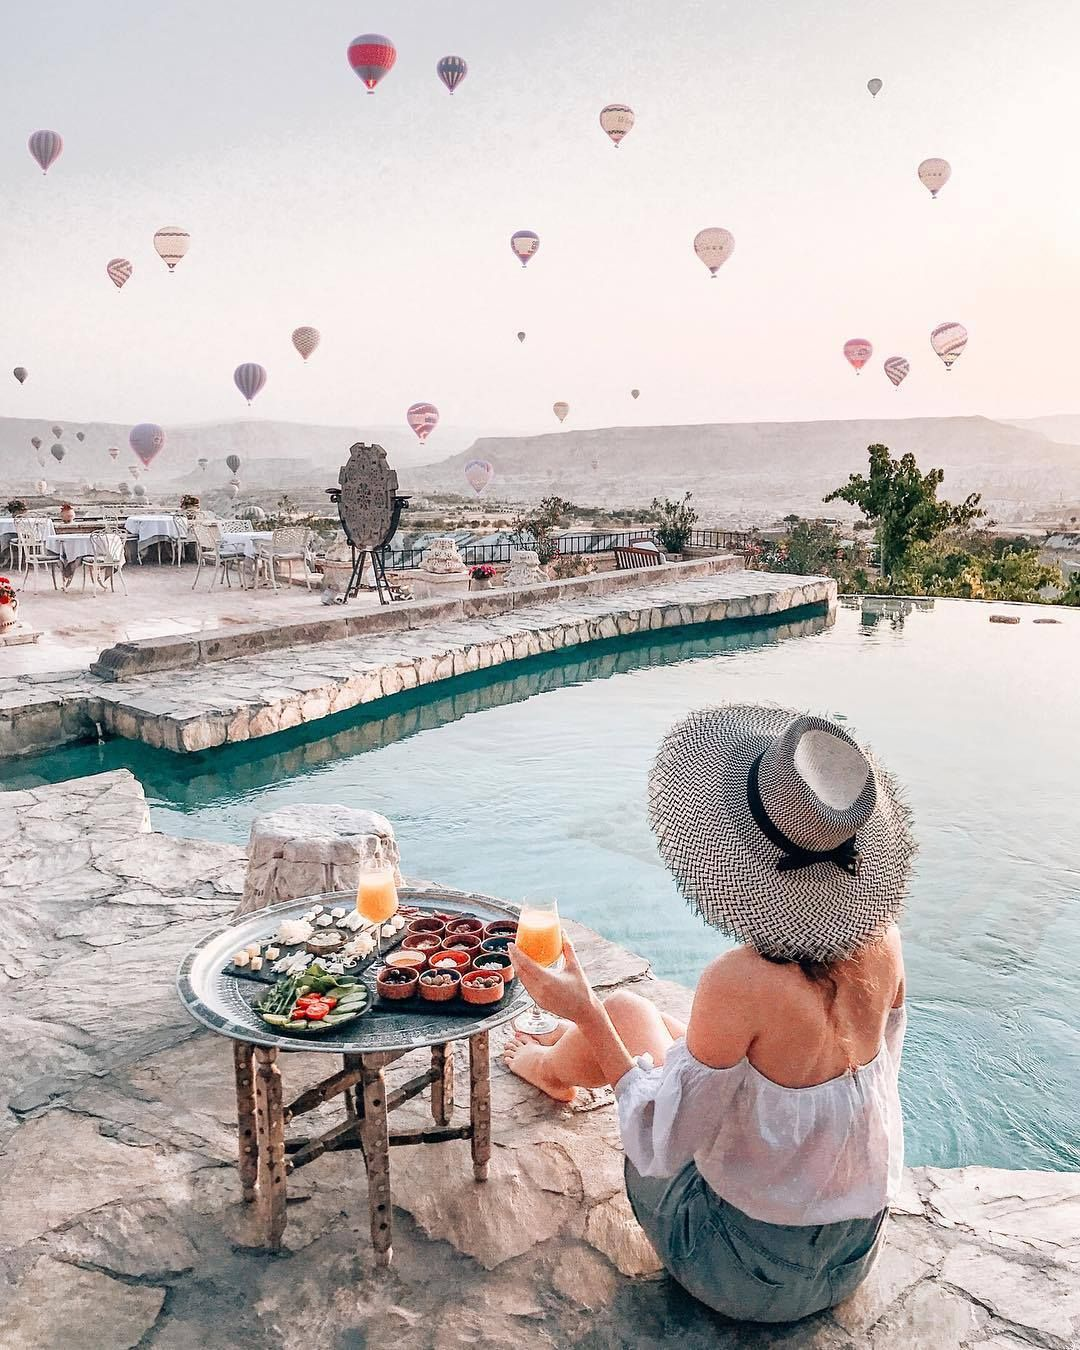 Pool with hot air balloons! Travel inspiration